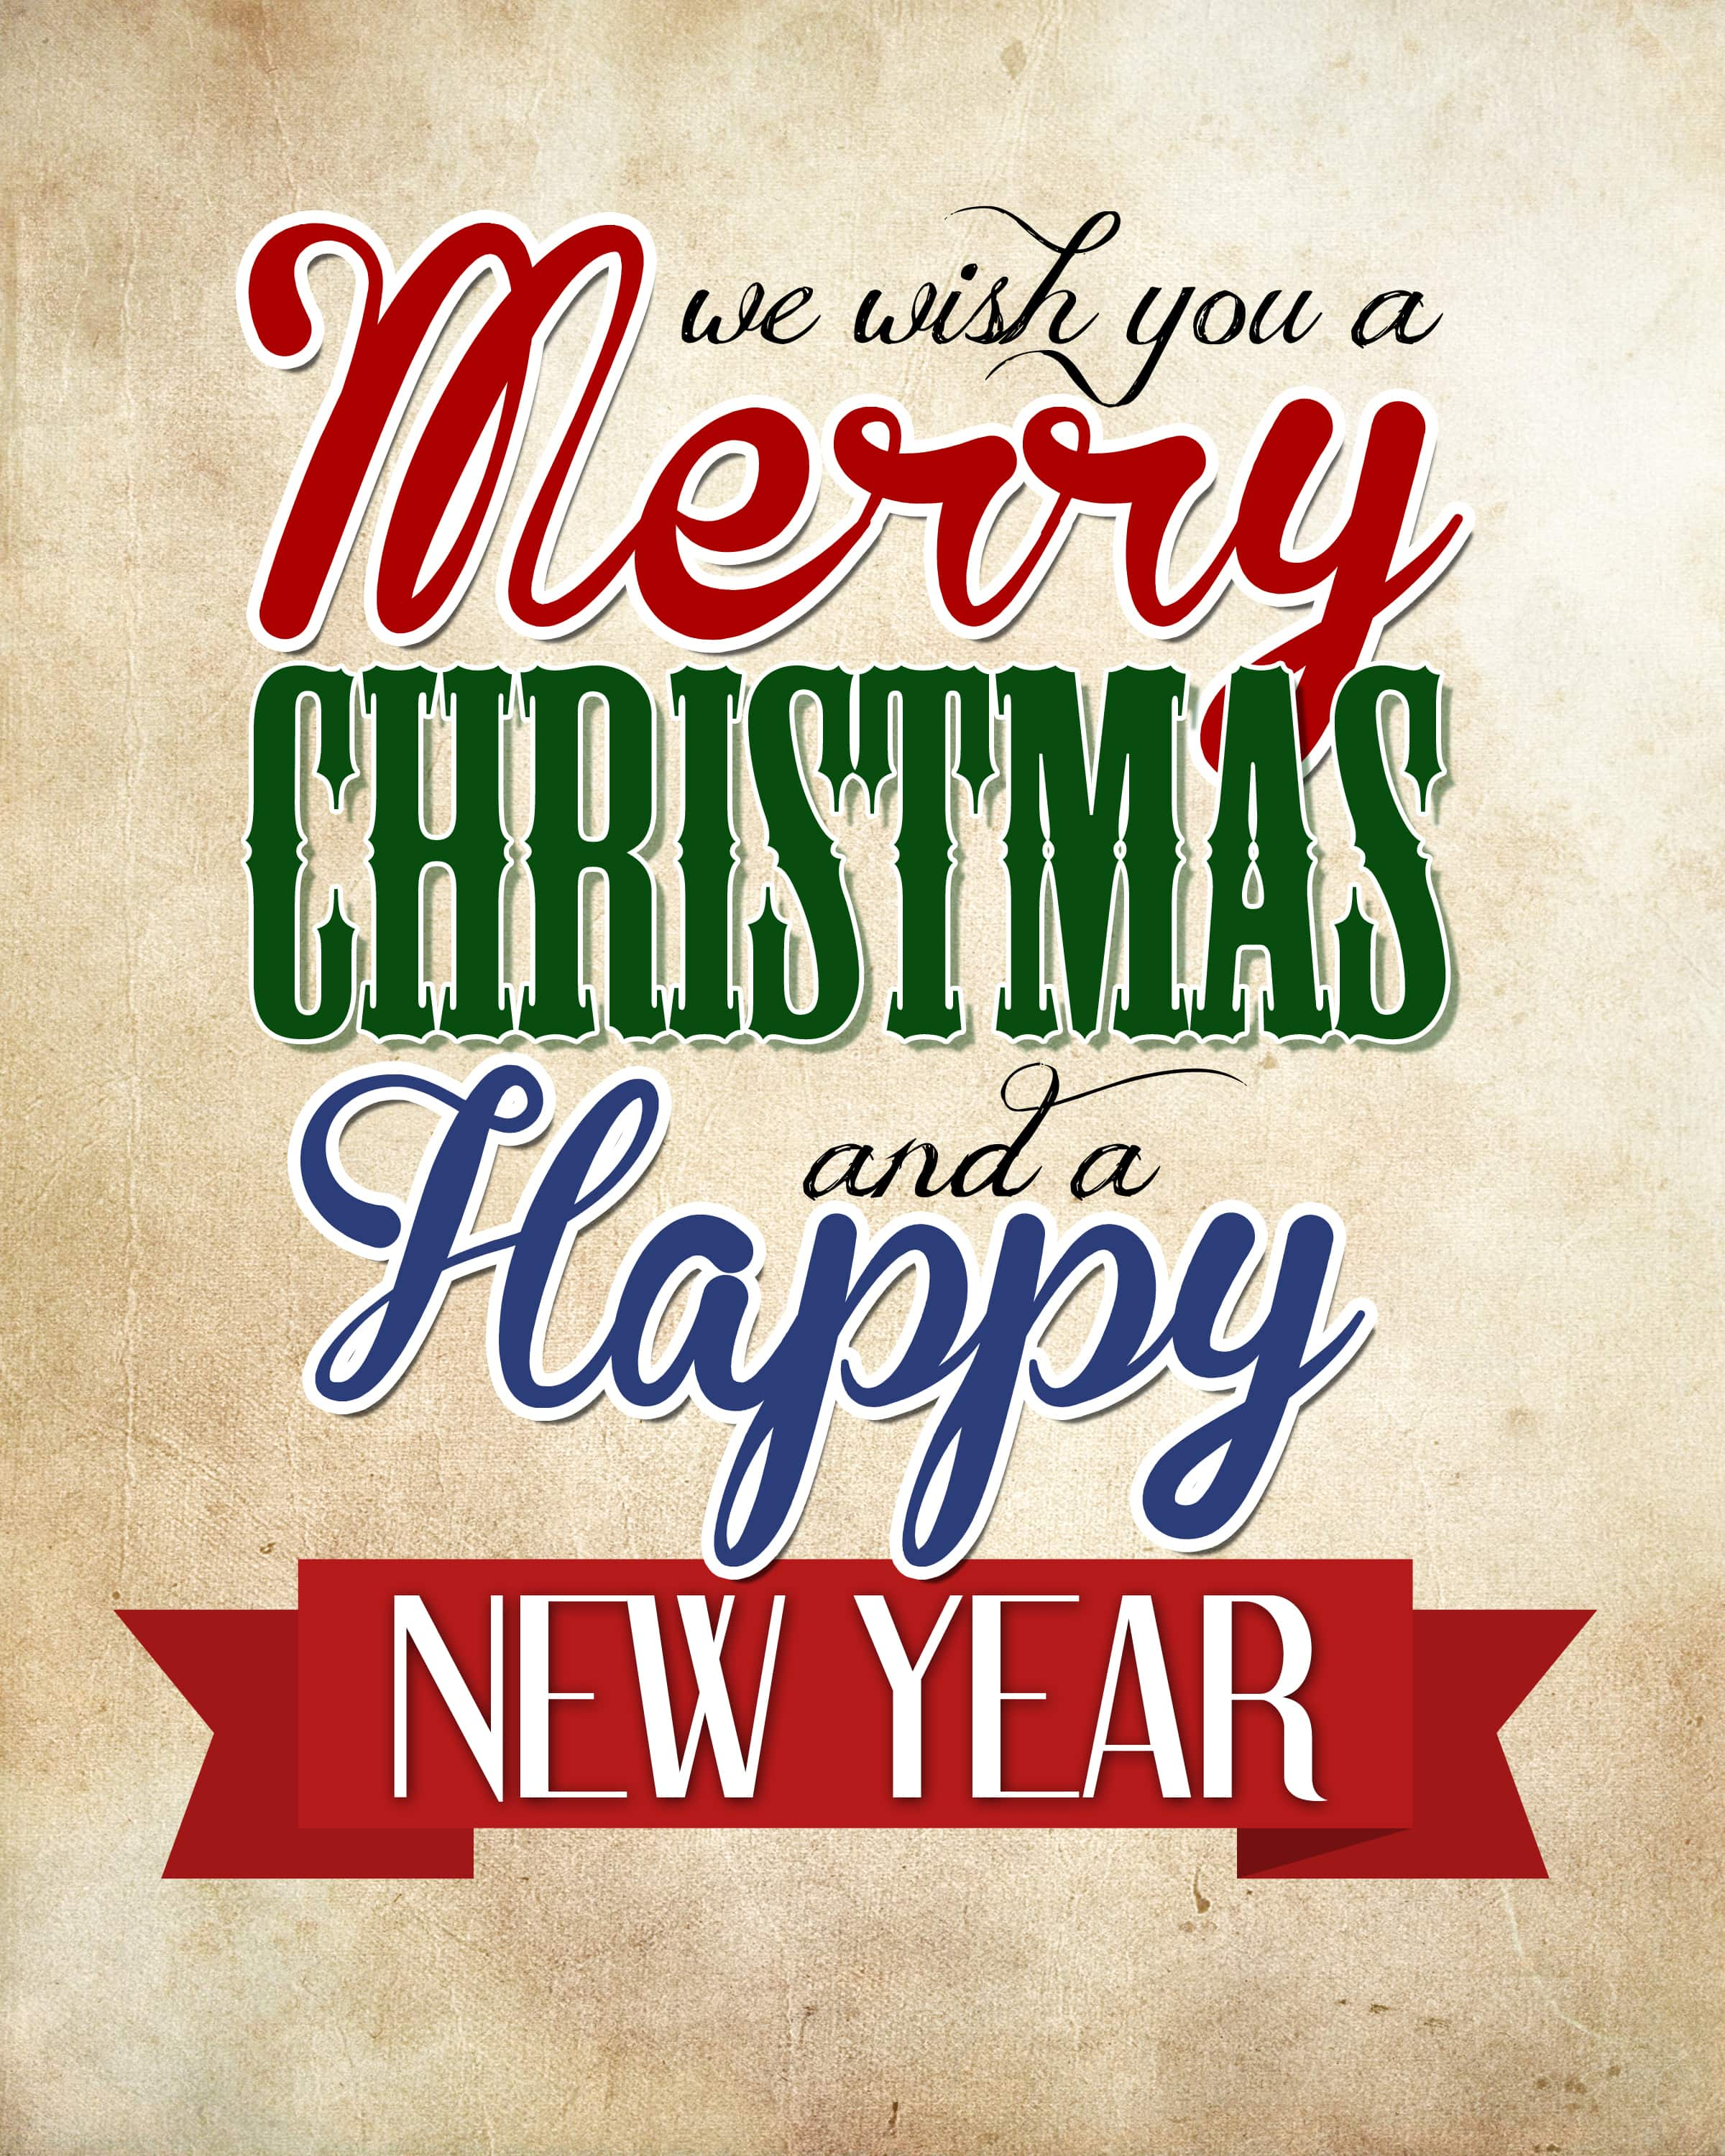 graphic relating to Merry Christmas Printable called Merry Xmas Joyful Fresh Yr Absolutely free Printable - How toward